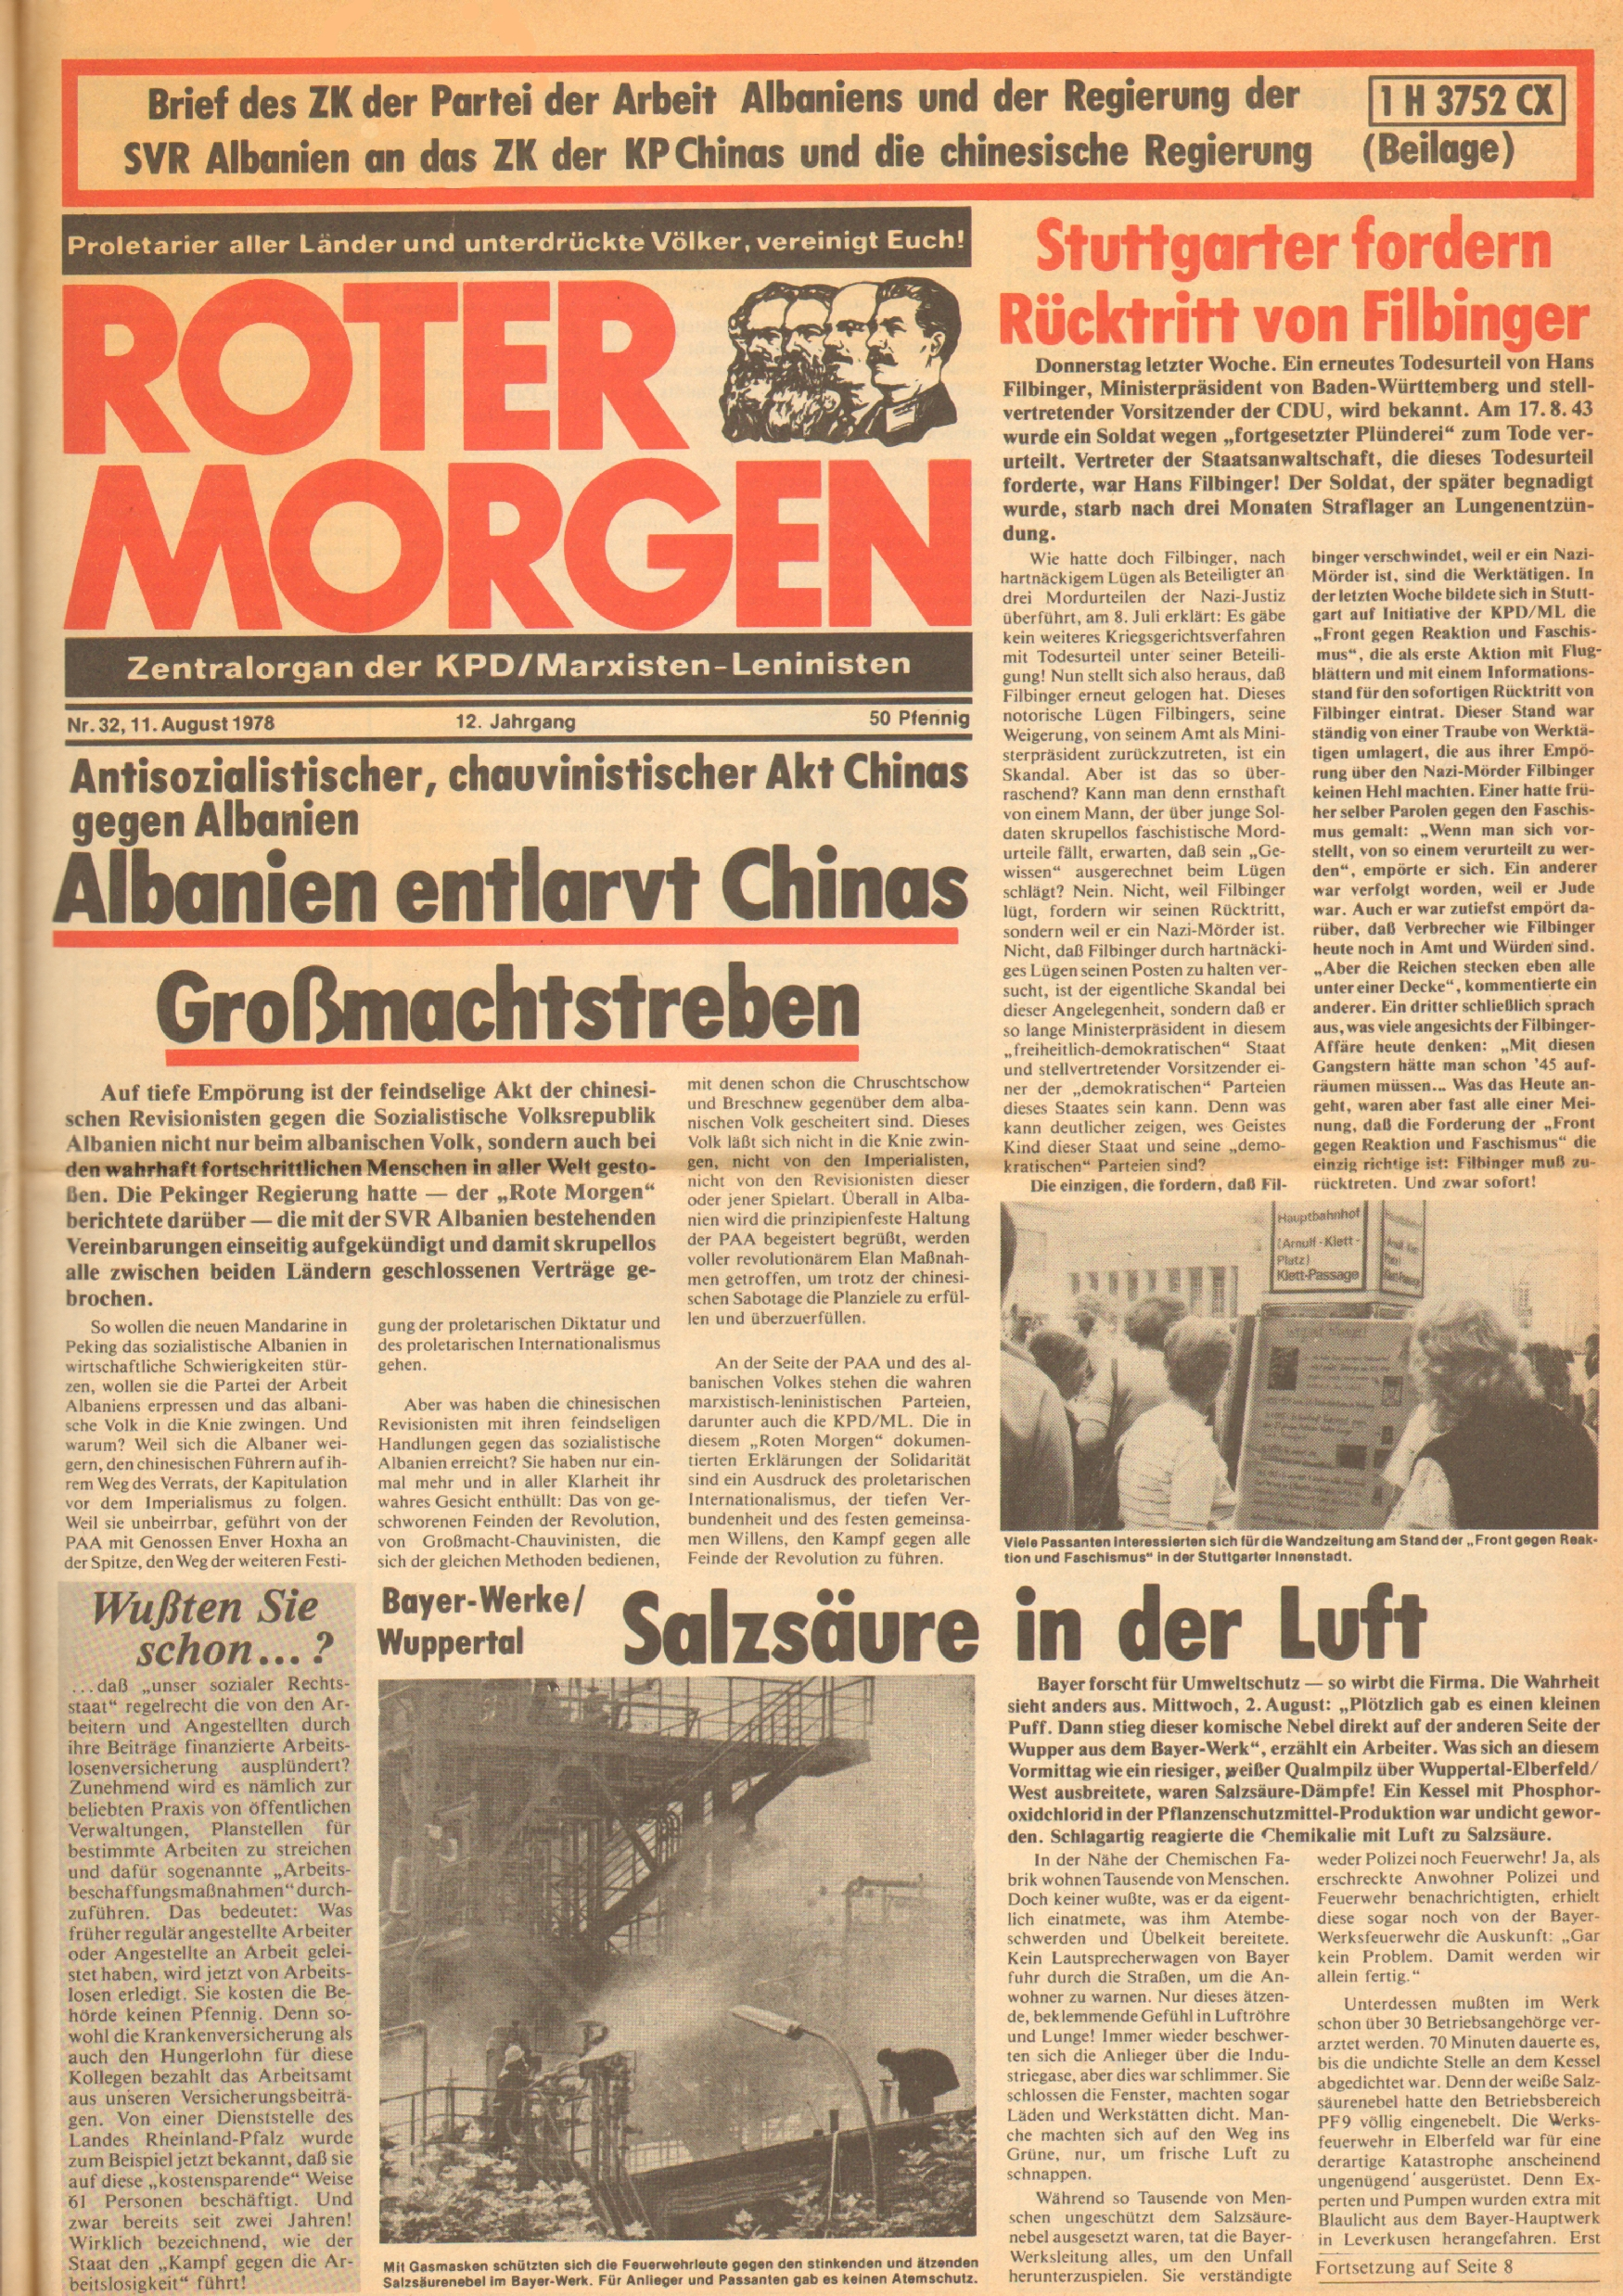 Roter Morgen, 12. Jg., 11. August 1978, Nr. 32, Seite 1